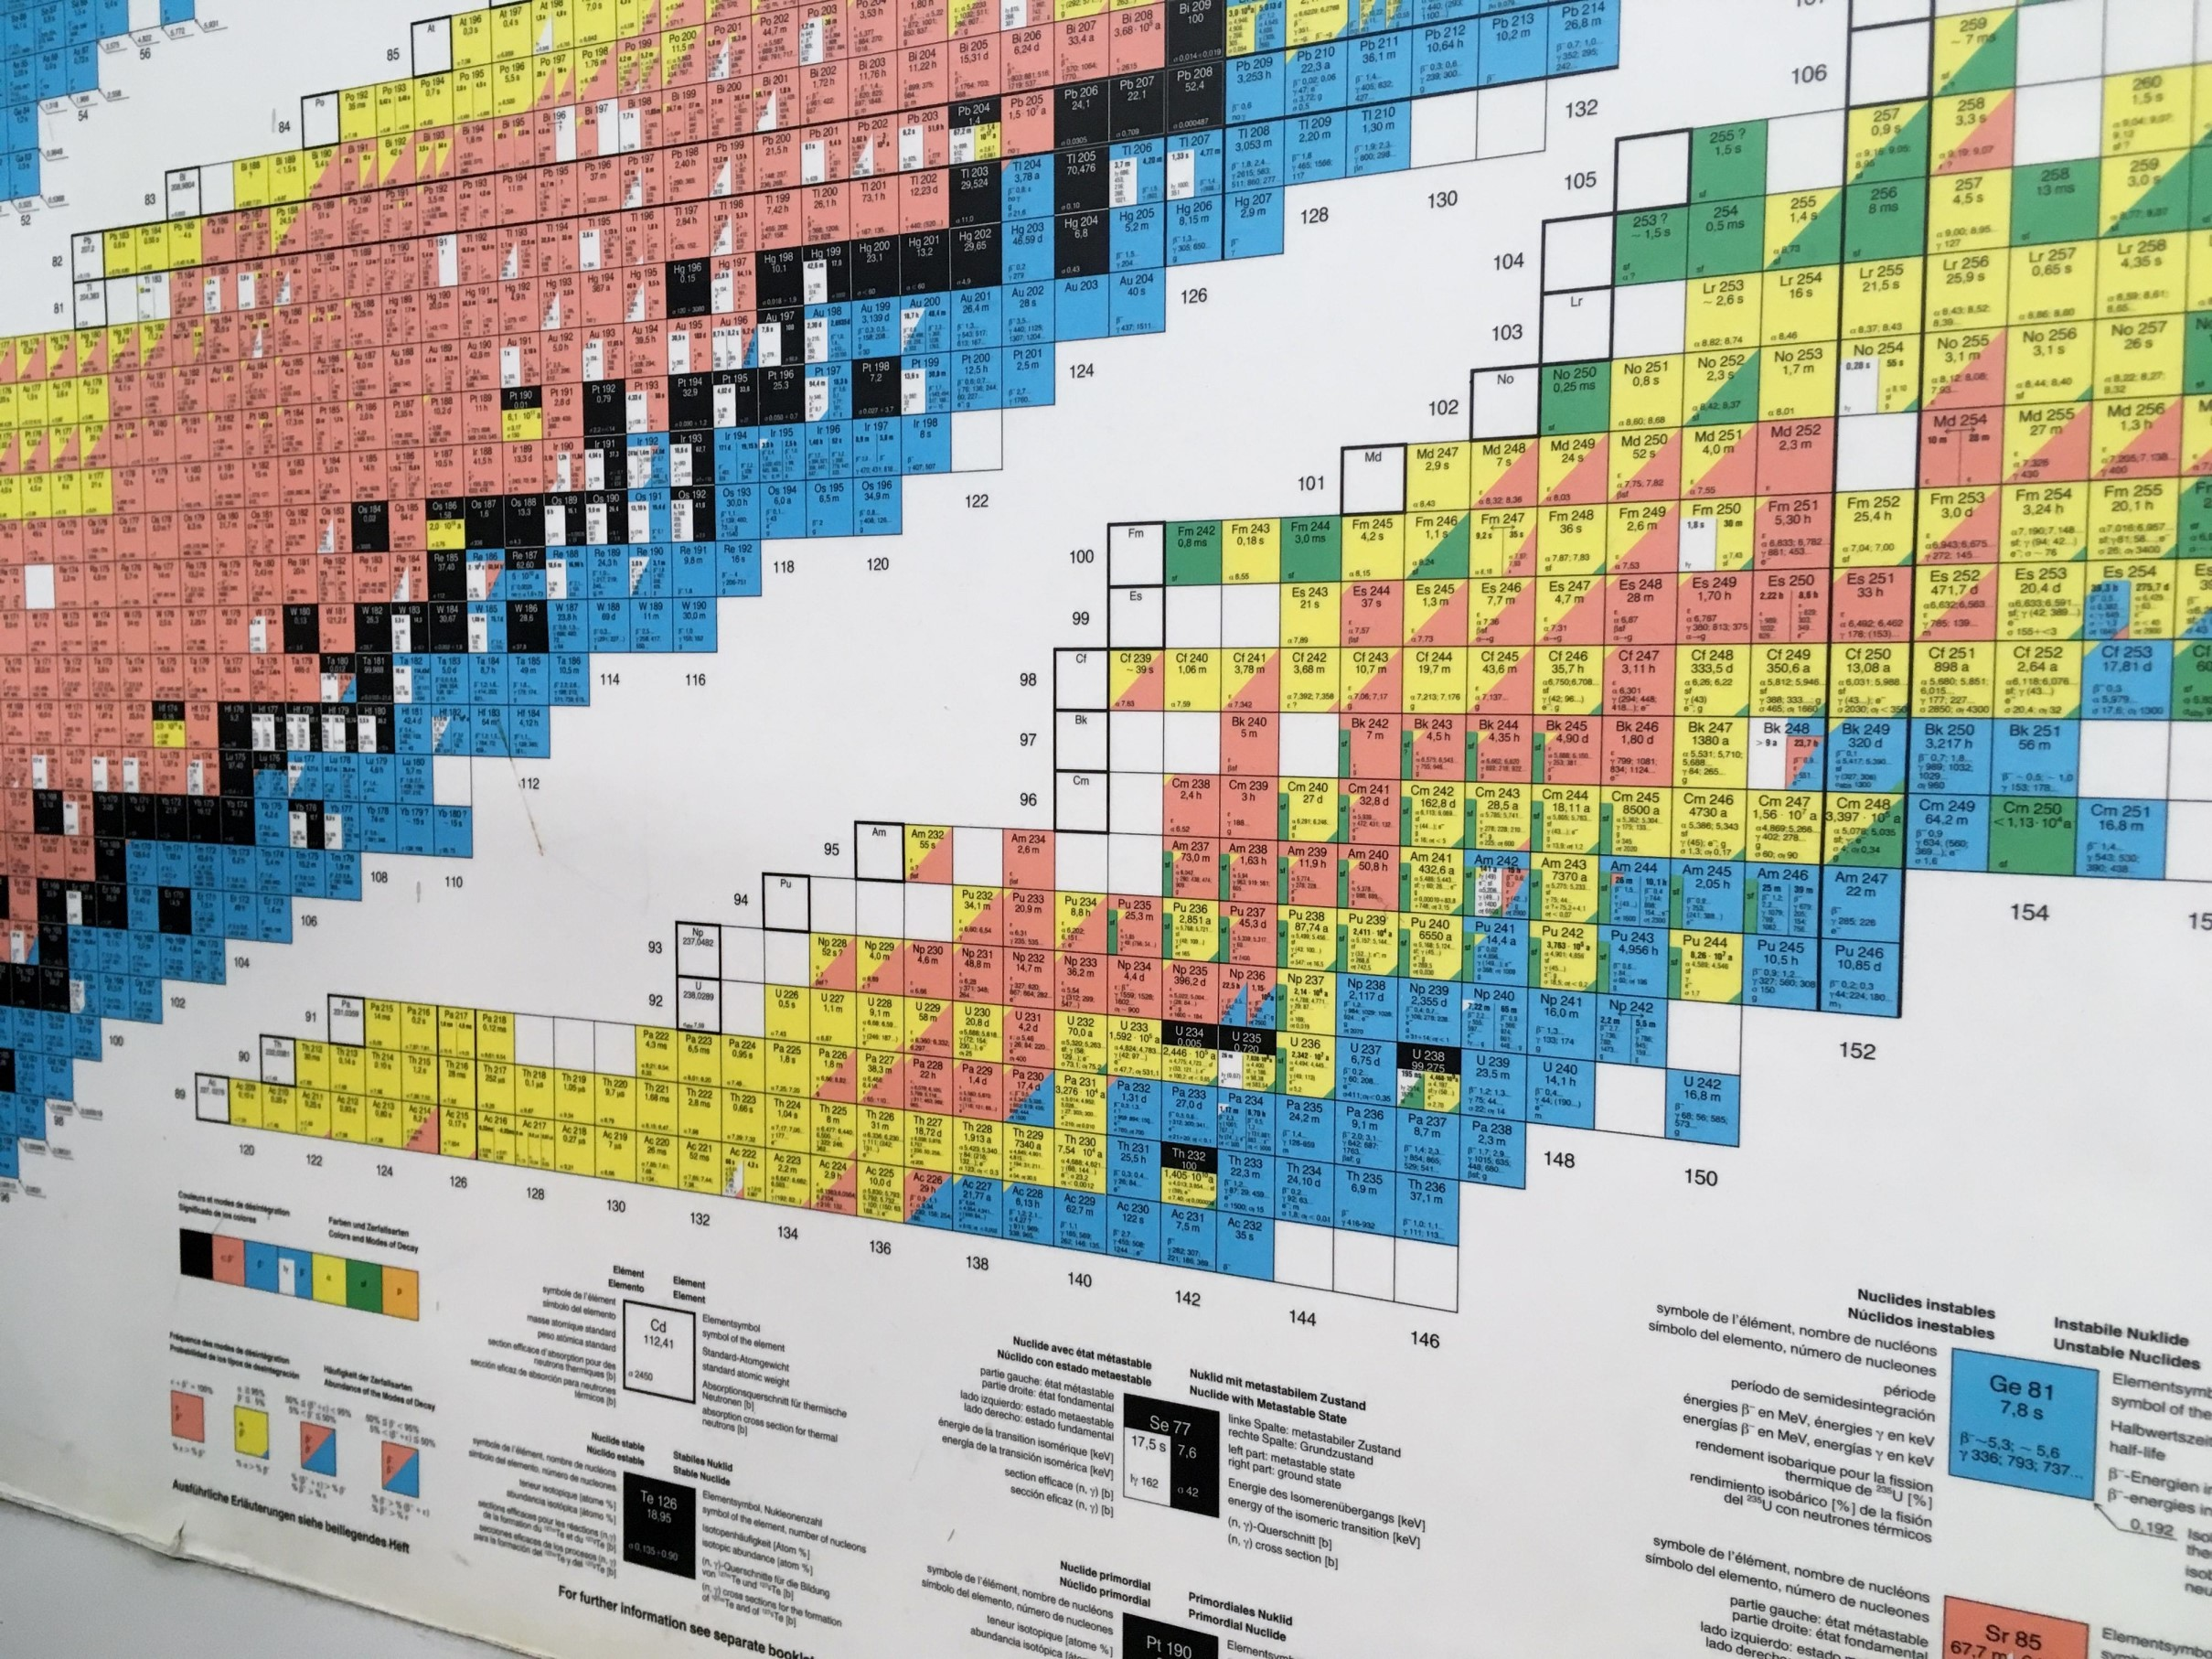 An illustration of the chemical elements on a wall